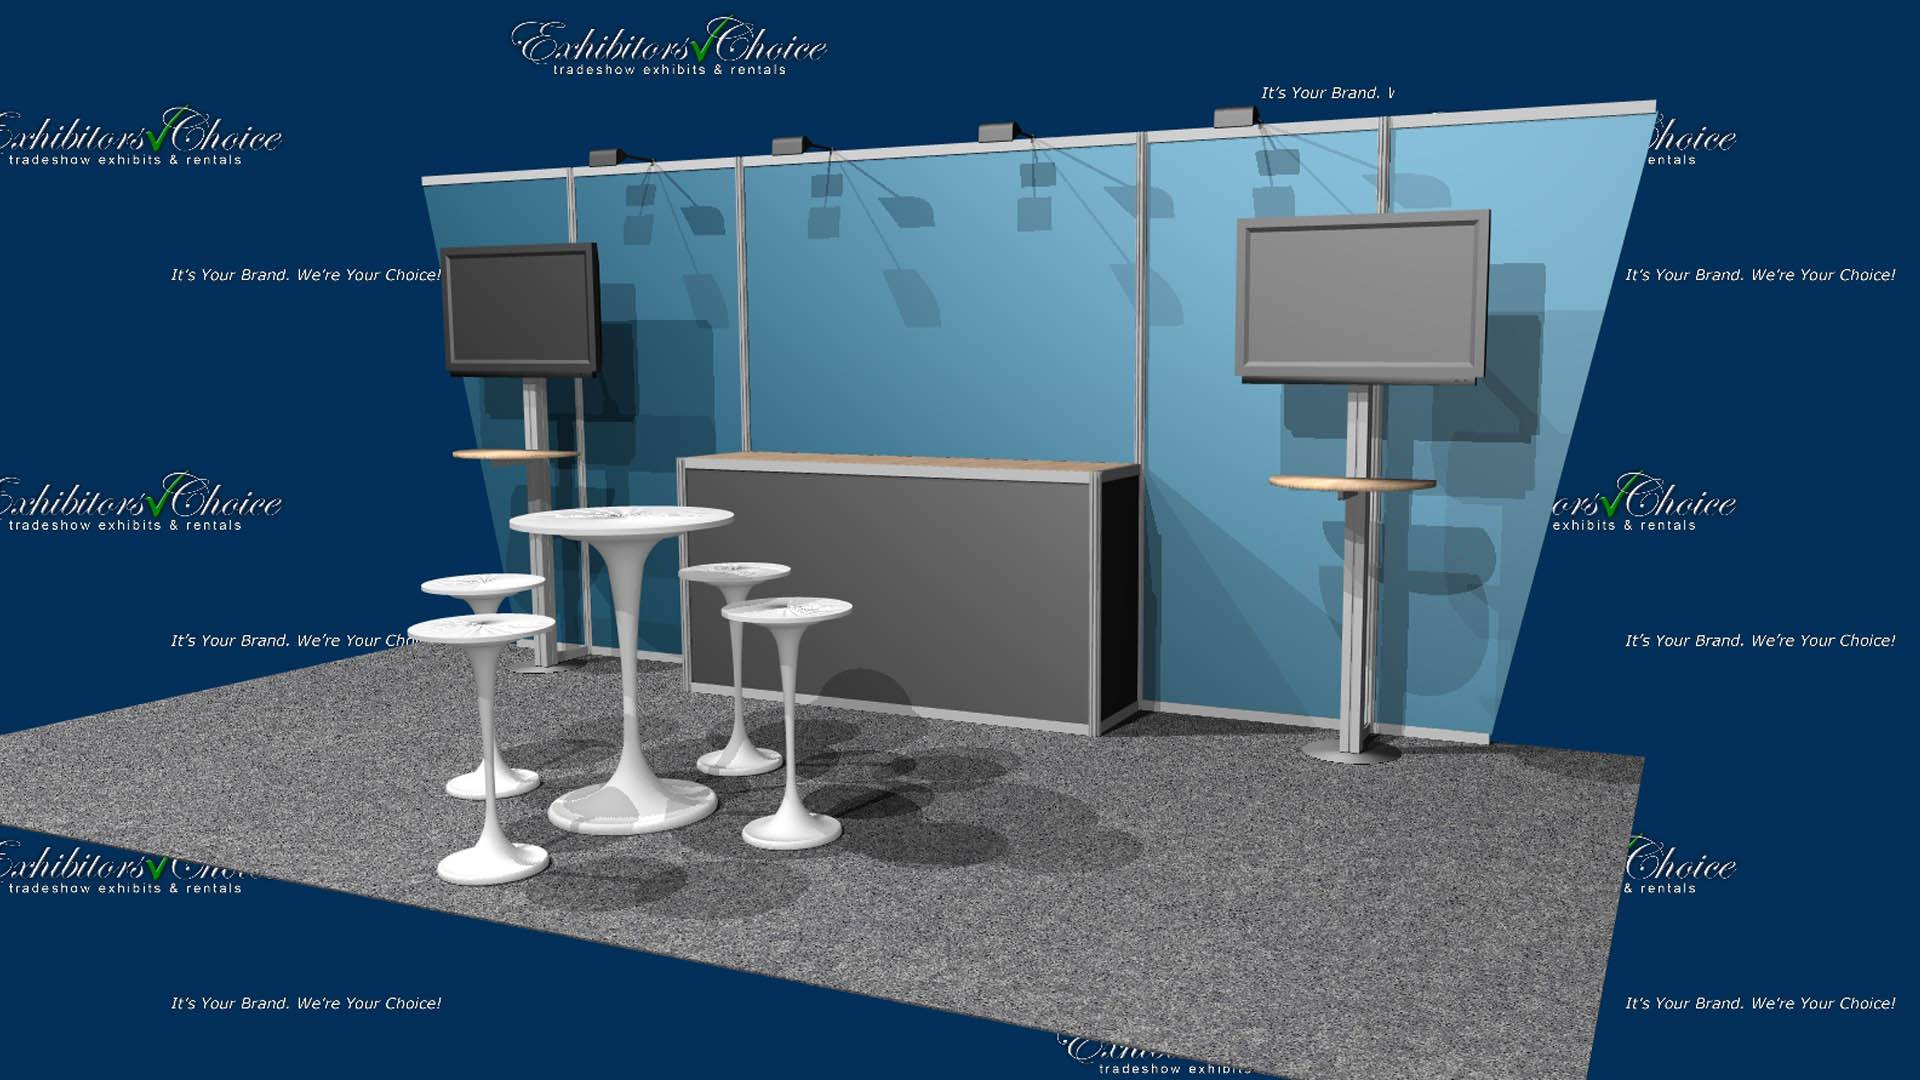 Orlando Trade Show Display Company